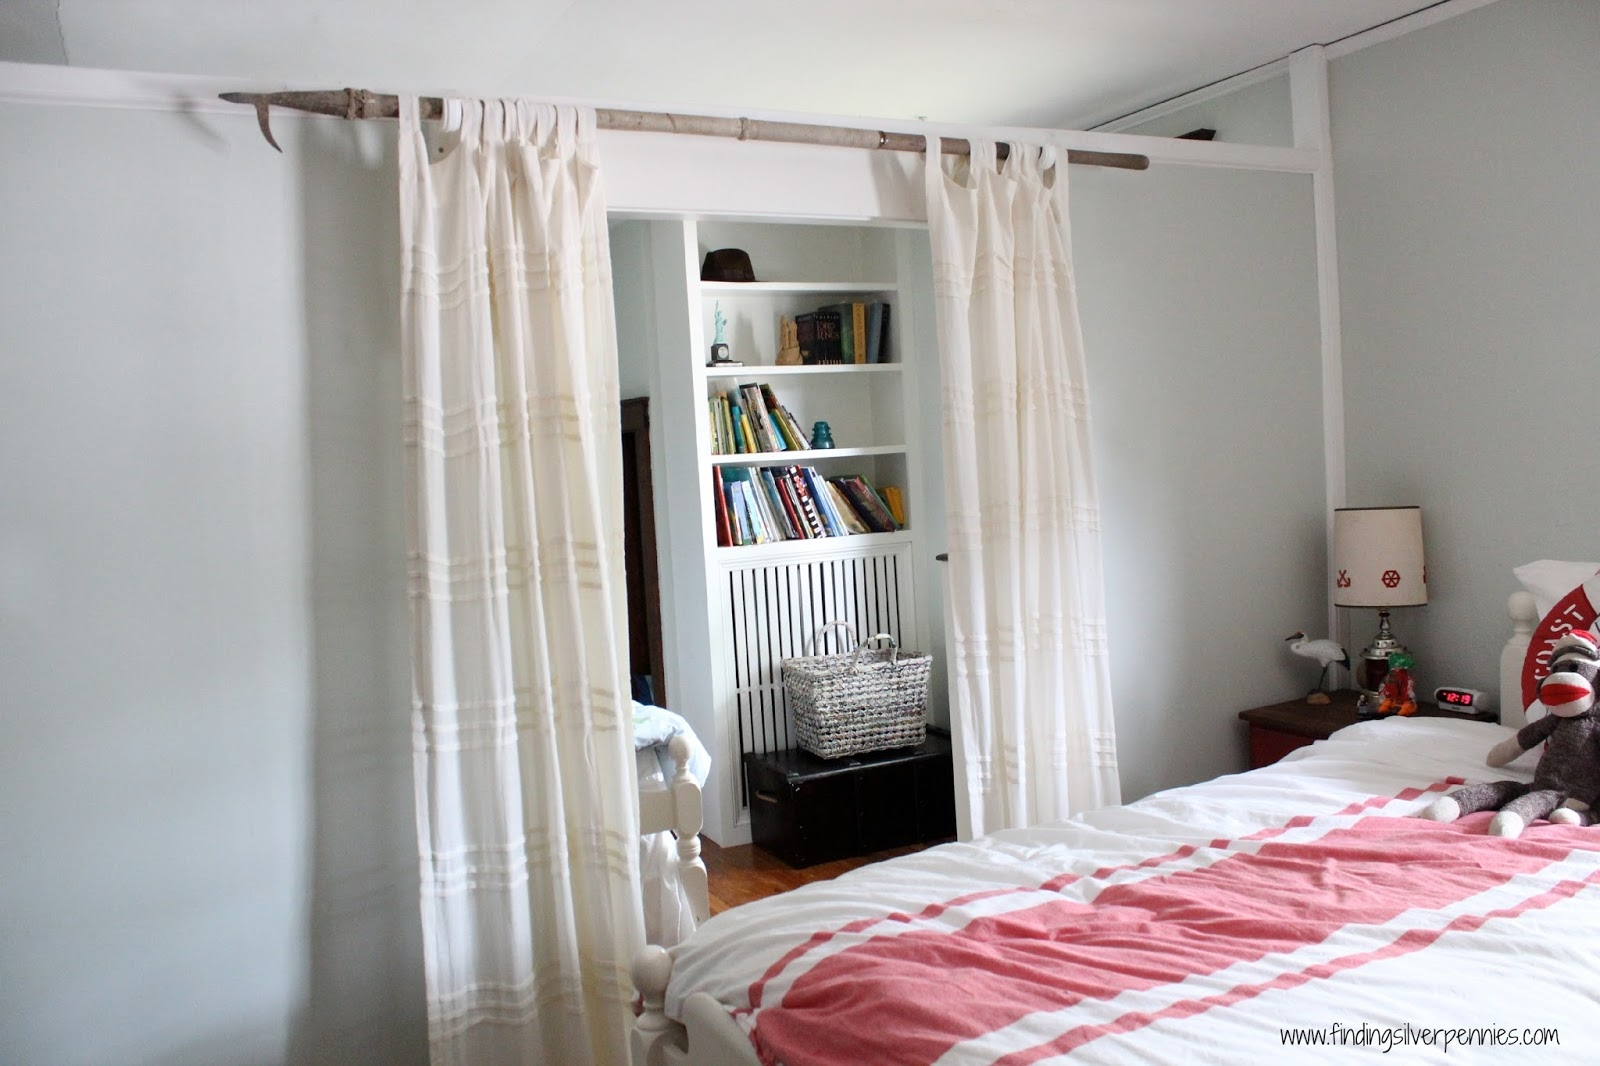 Diy Curtain Rod Finding Silver Pennies In Nautical Curtain Rods (View 4 of 25)